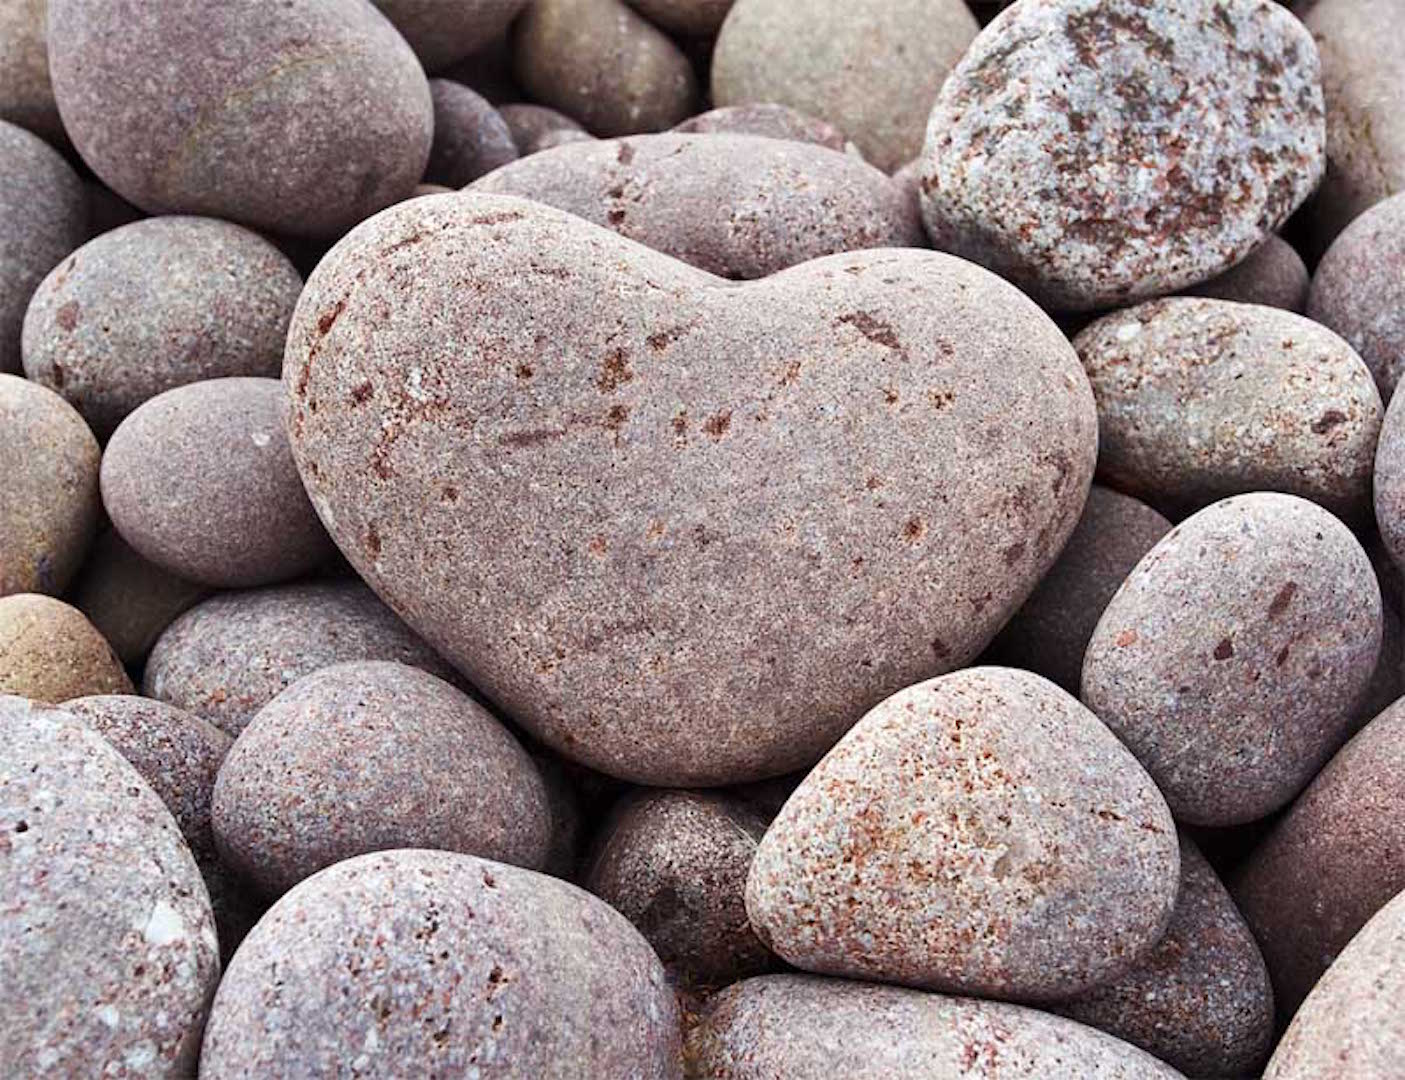 Heart-shaped-stone-on-boulder-beach3